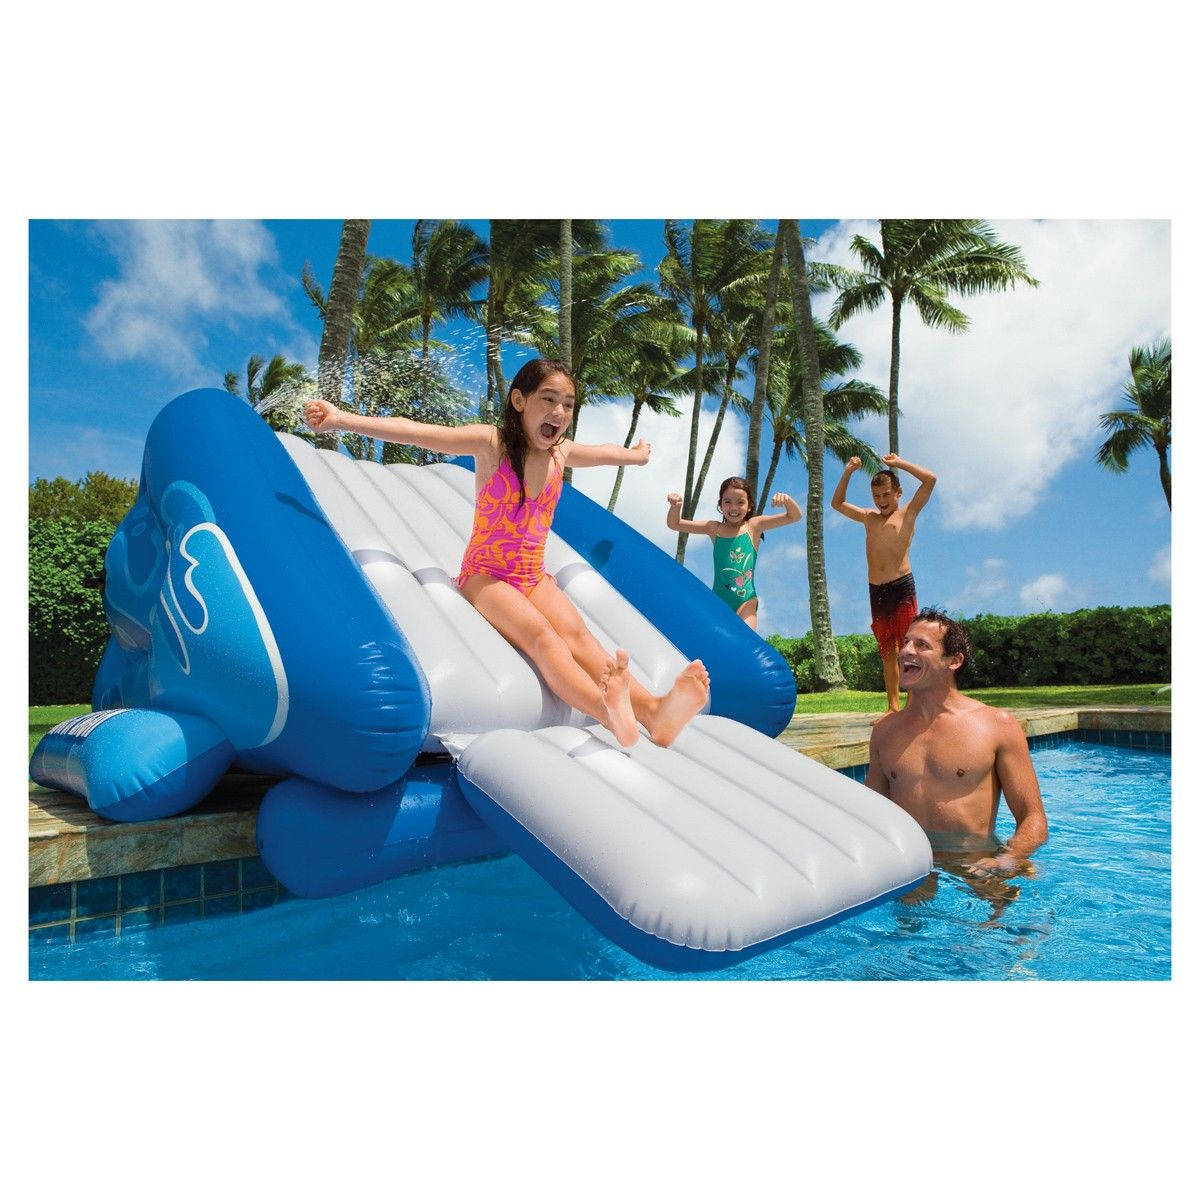 The Intex Giant Inflatable Water Slide Brings Crazy Water